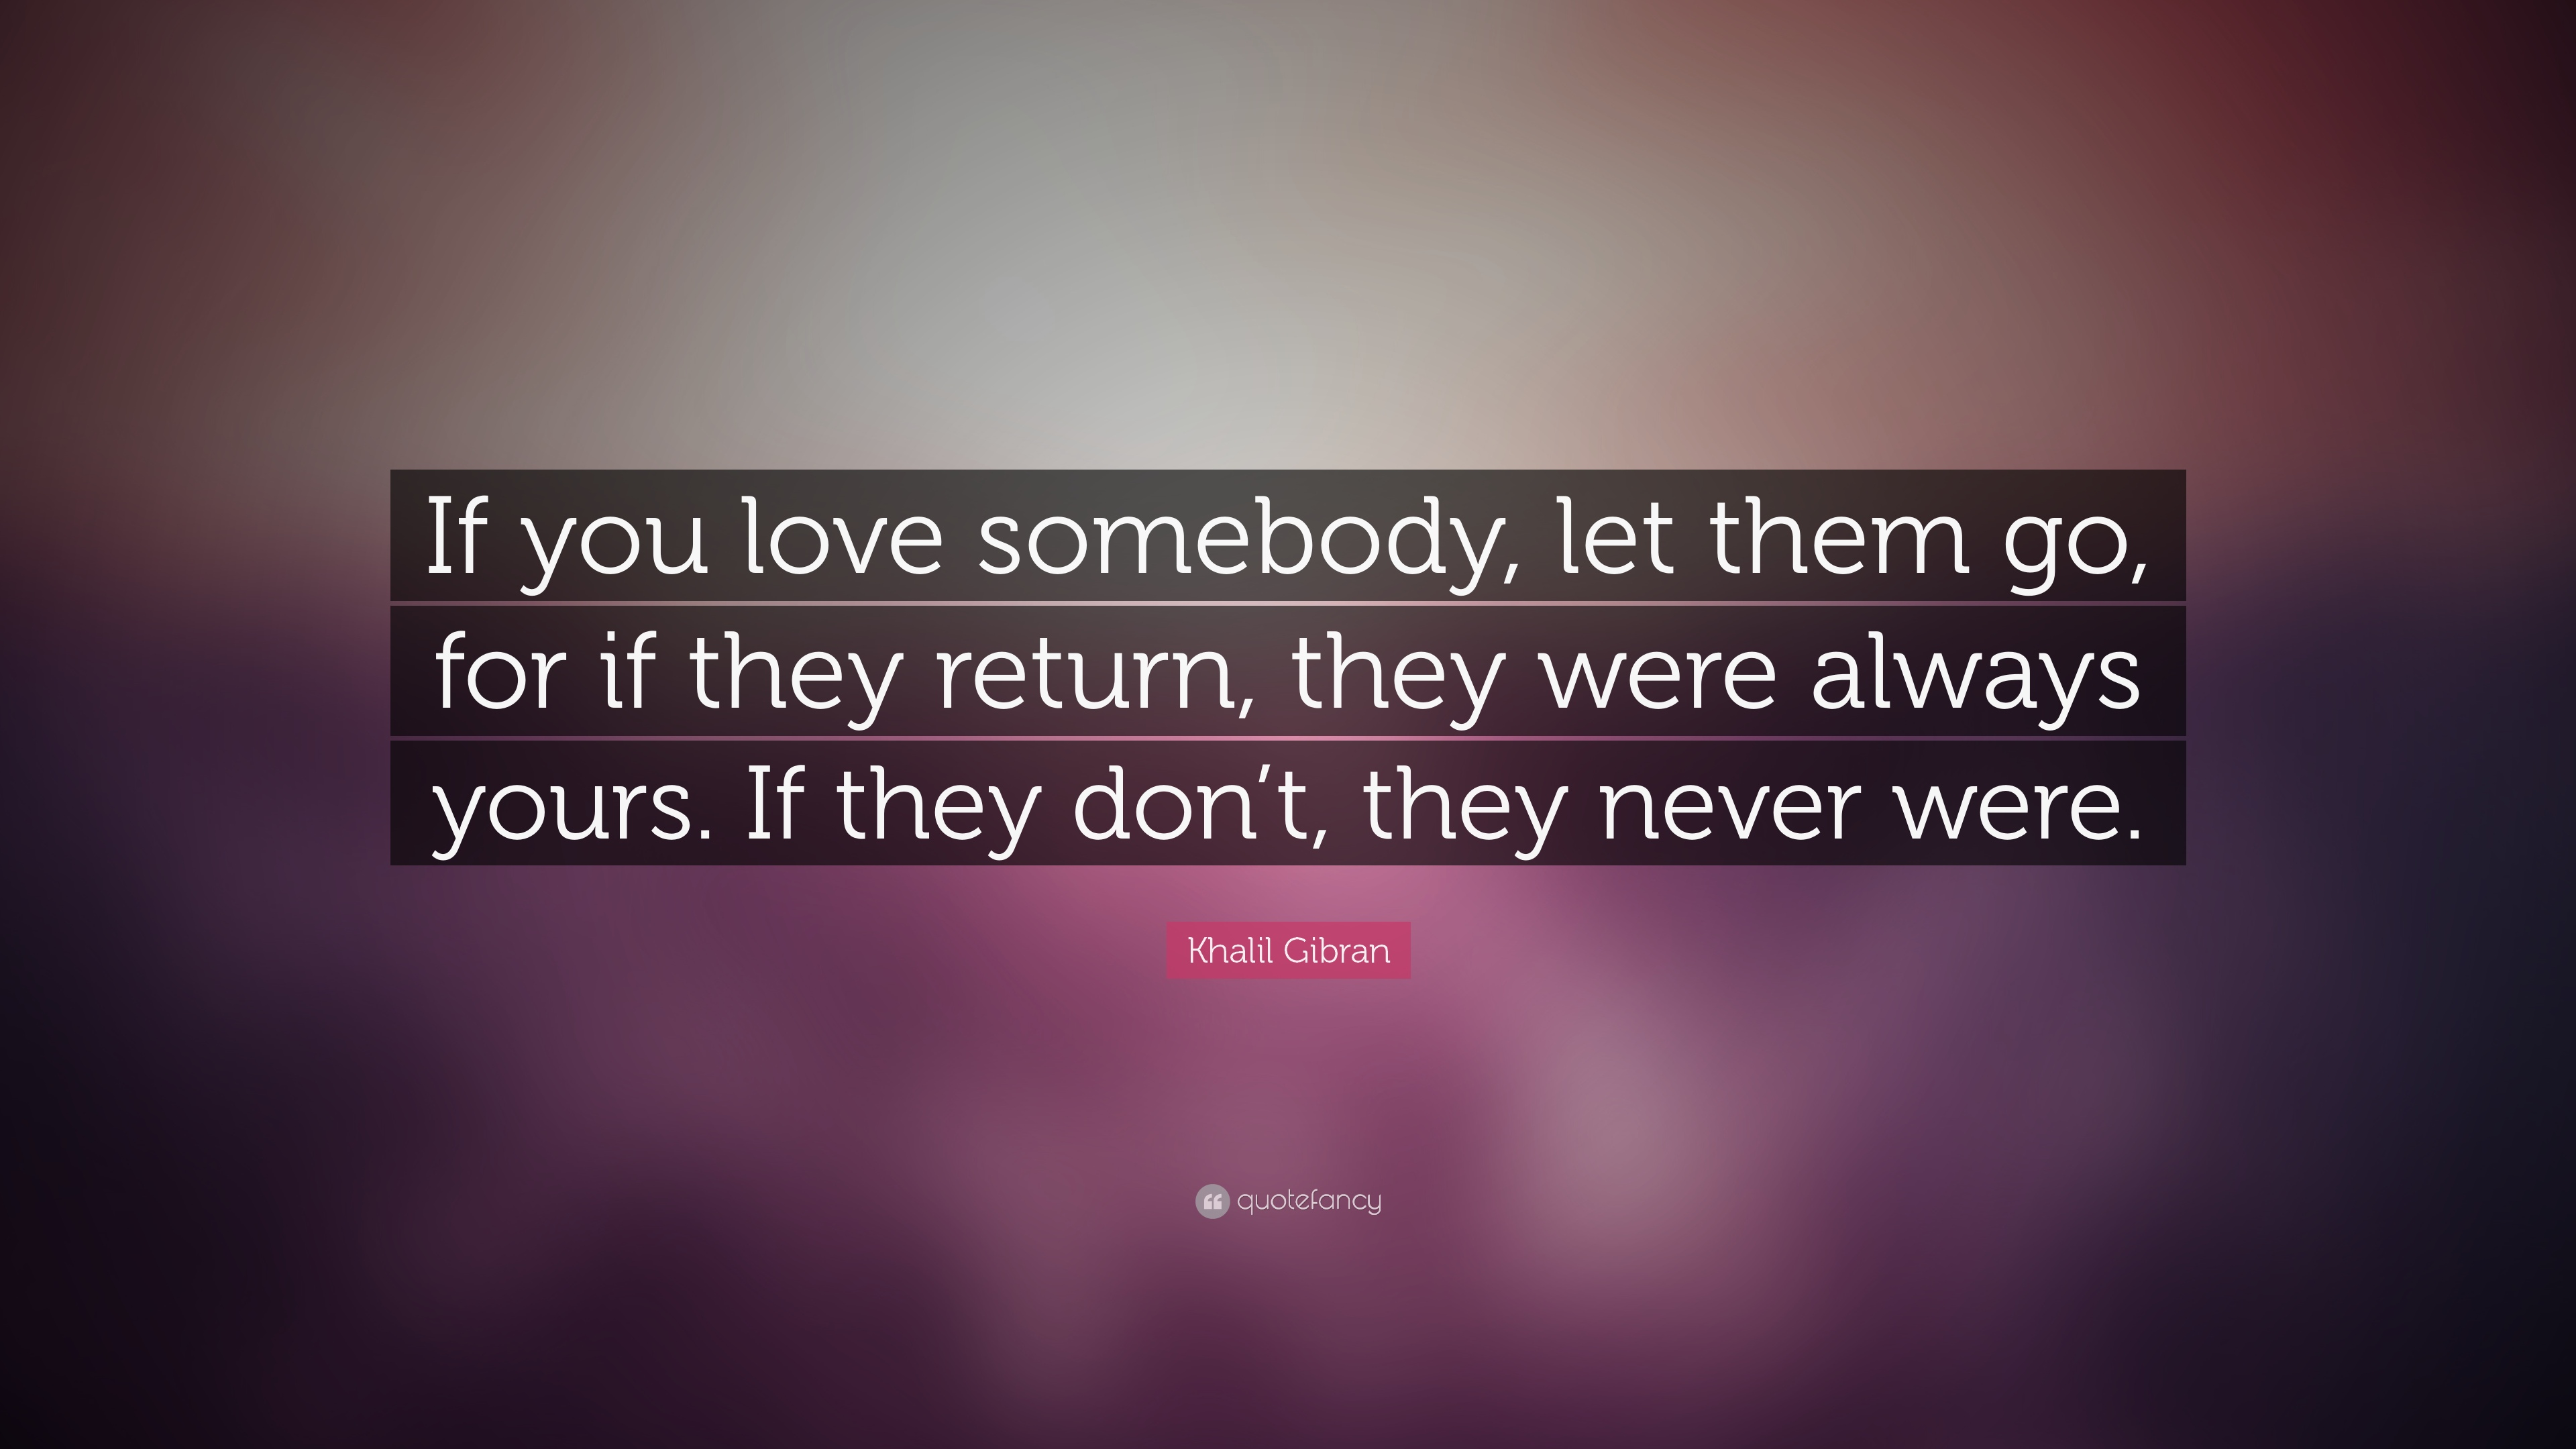 If you love them let them go quote